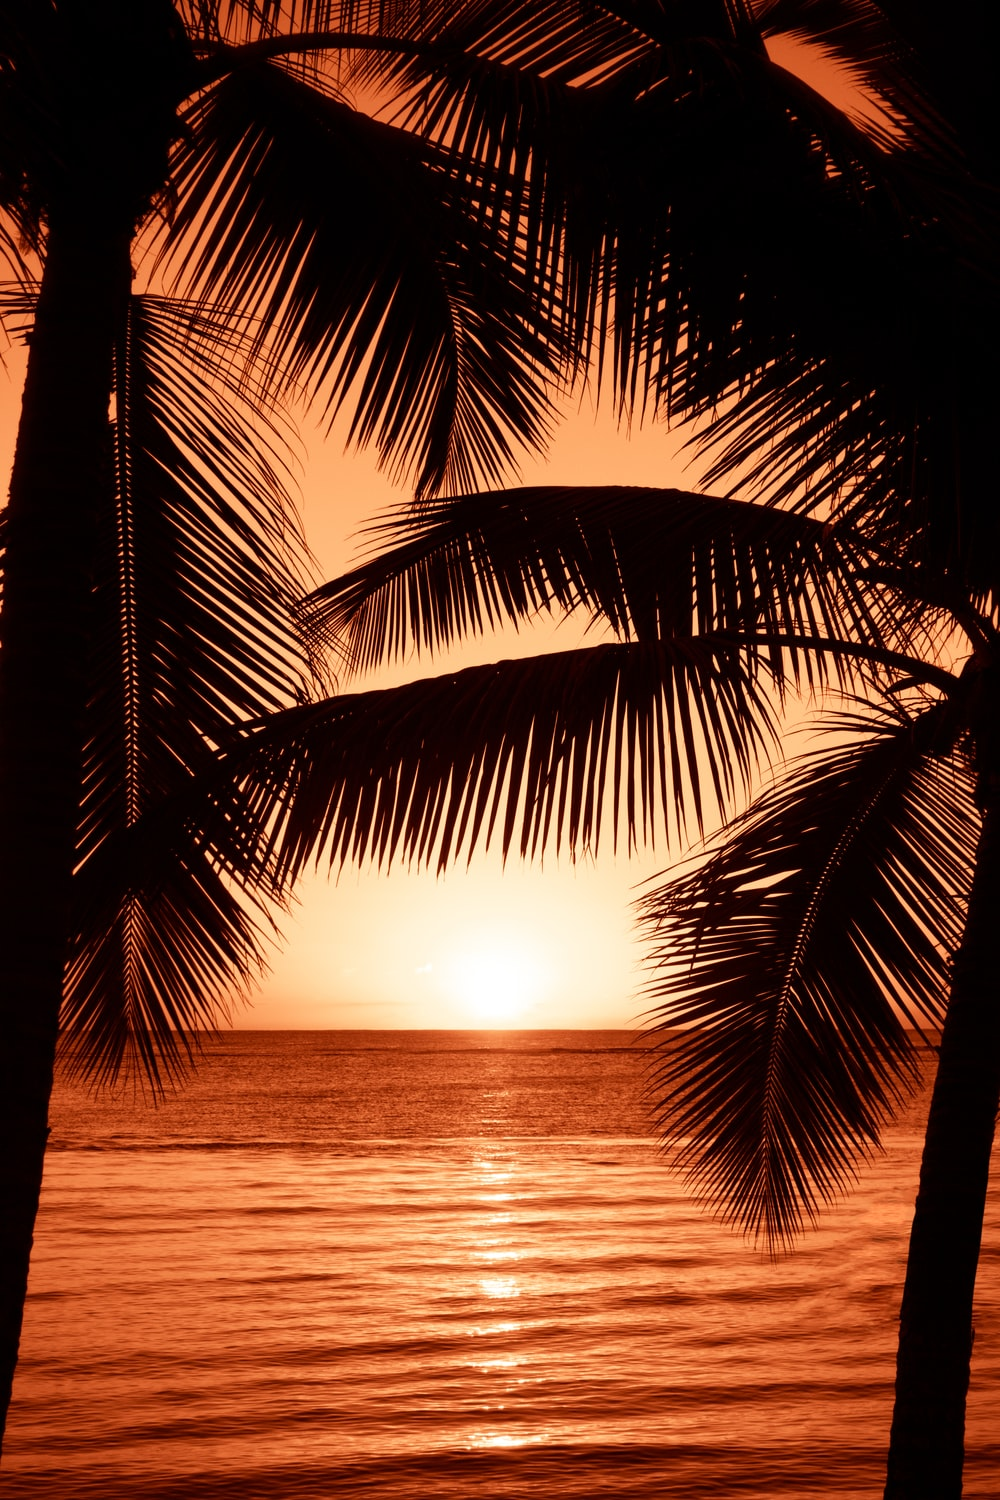 silhouette photography of two coconut trees near body water during golden hour